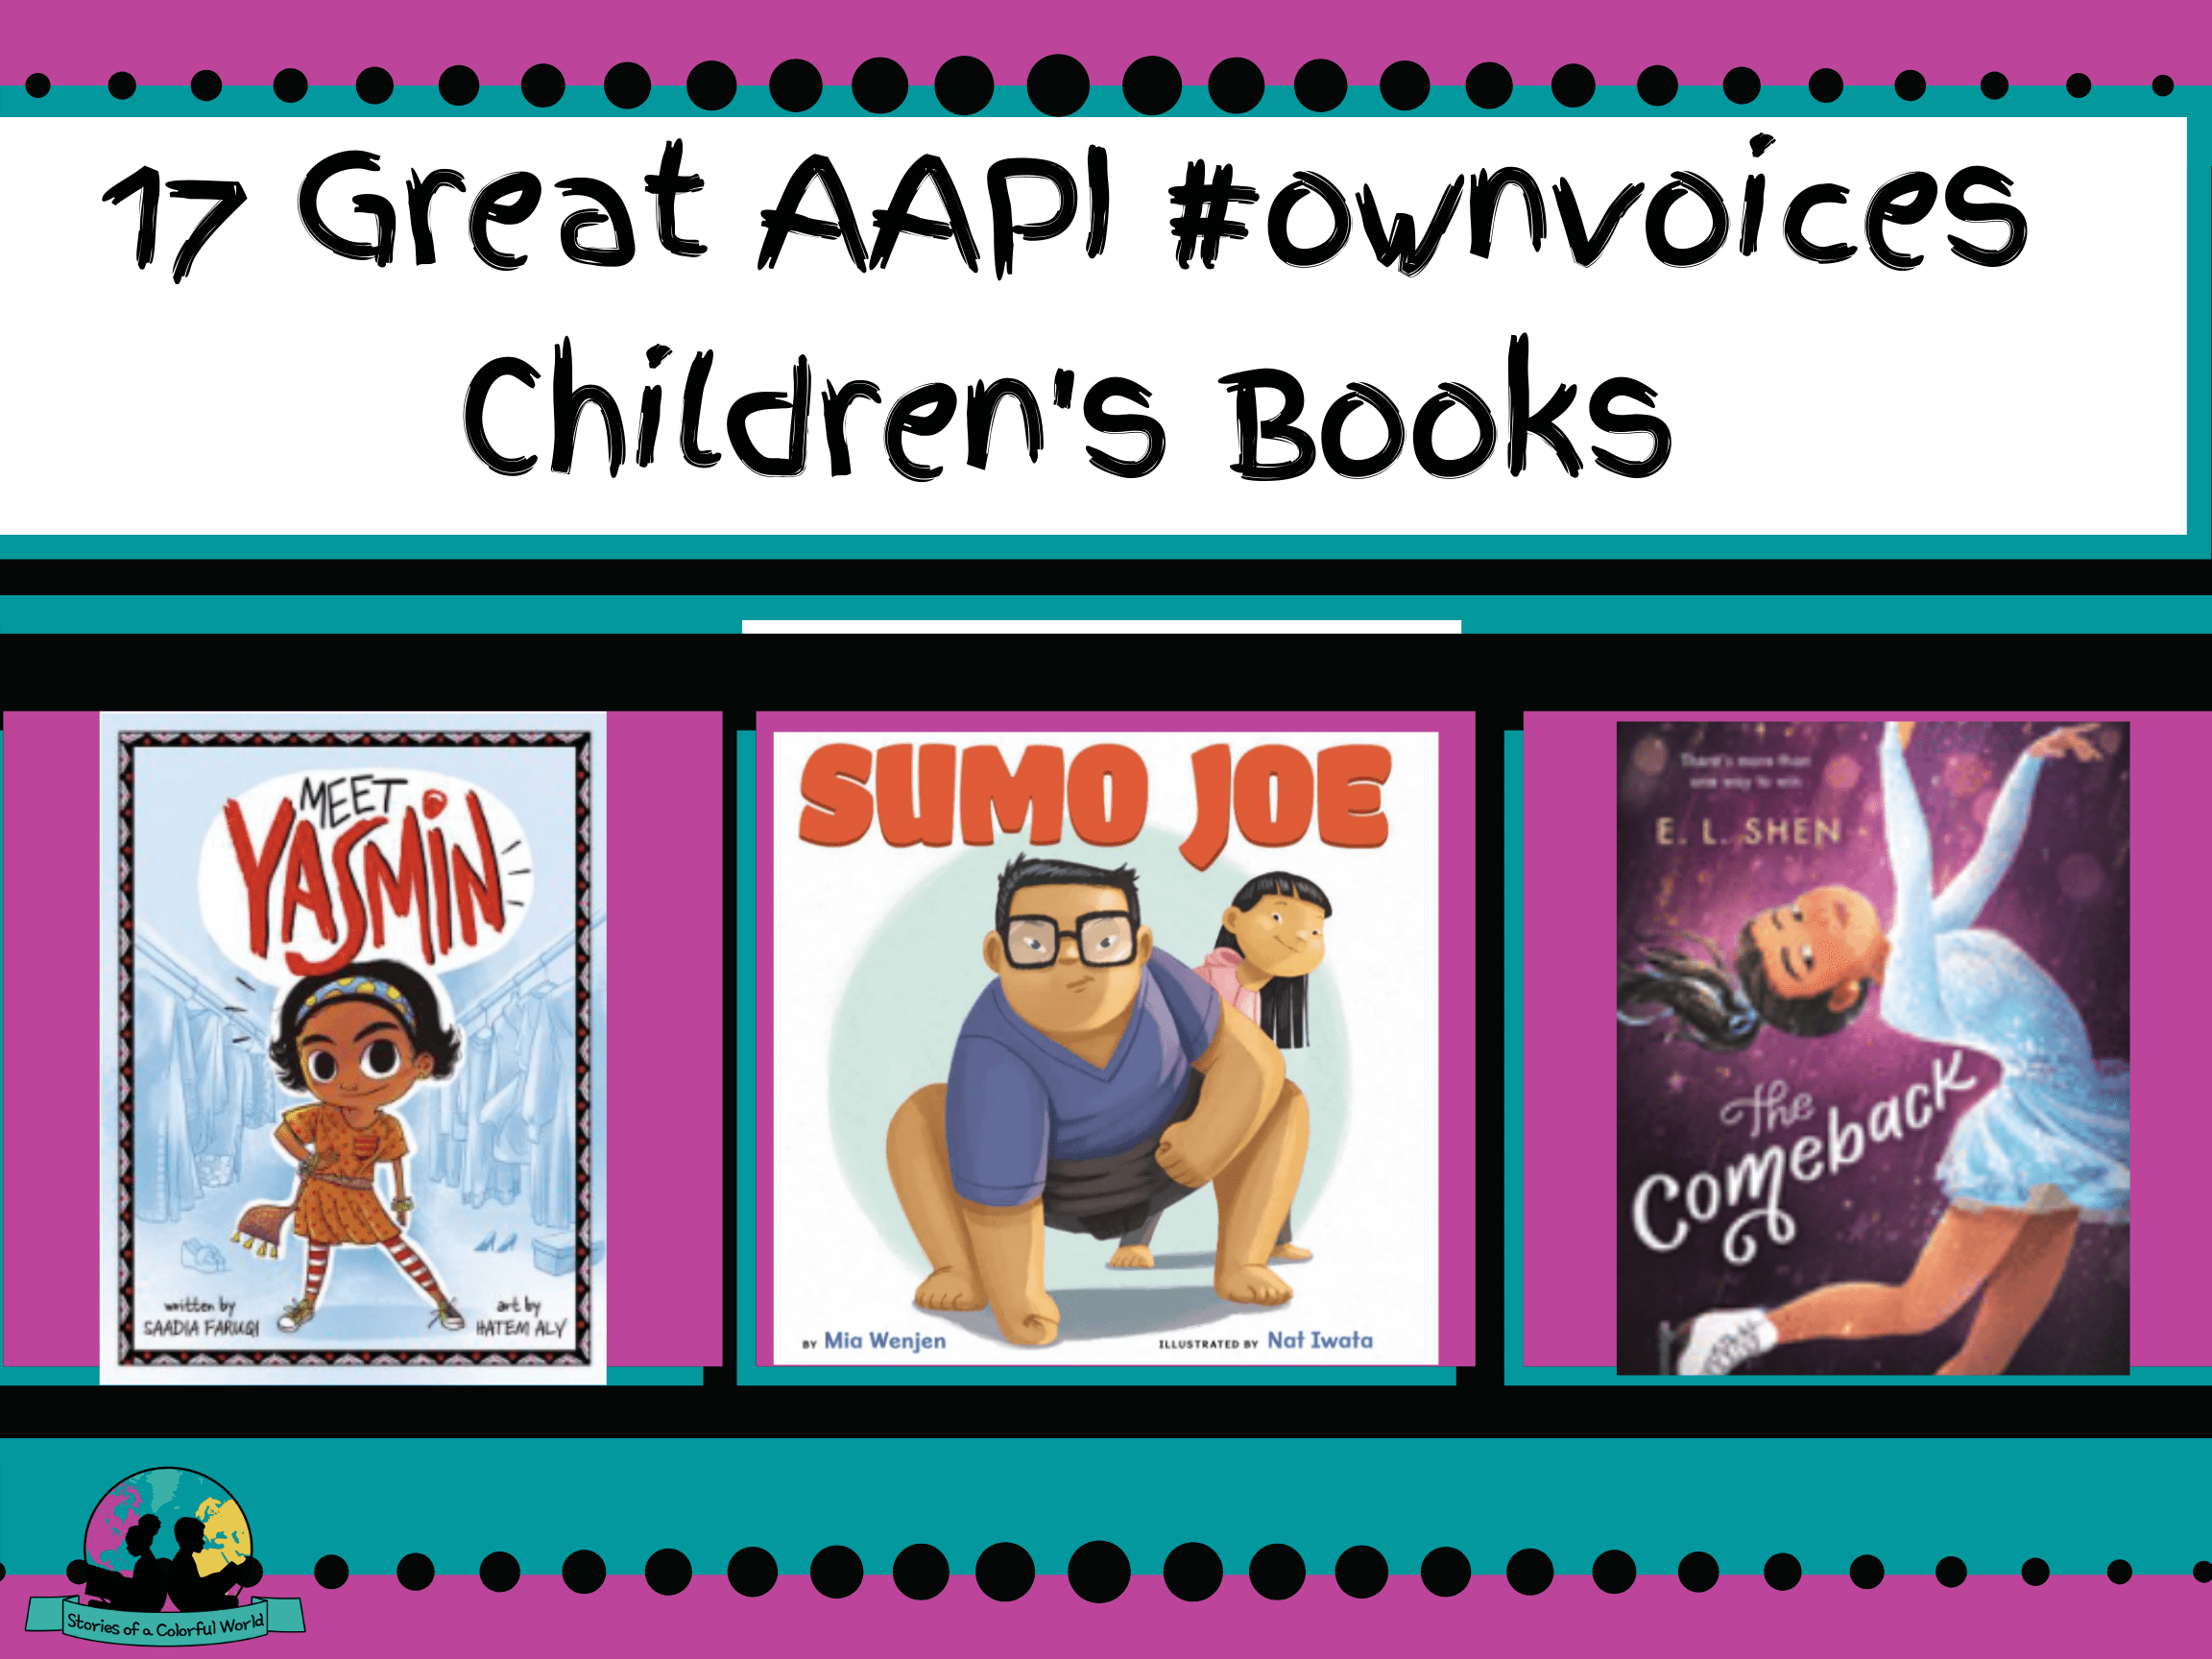 17 Great AAPI #ownvoices Children's Books